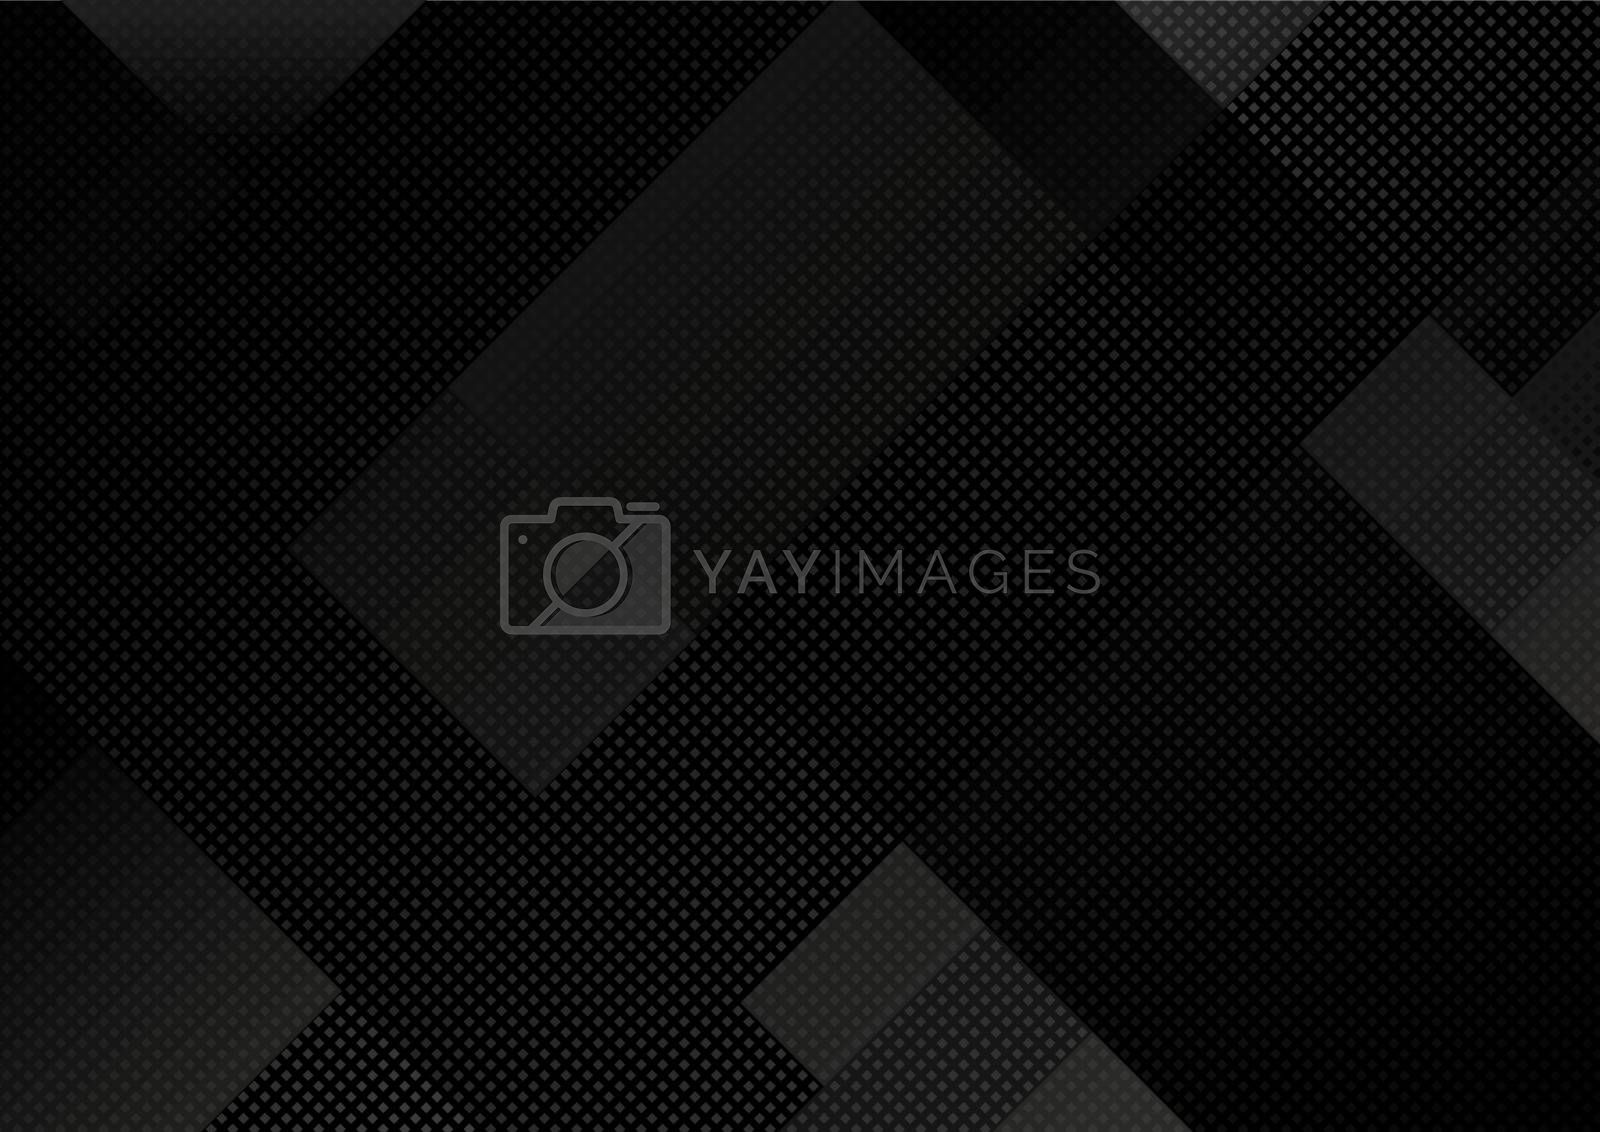 Black Abstract Geometric Grid Background - Dark Pattern with Diagonal Grid in Dark Gray Colors, Vector Illustration